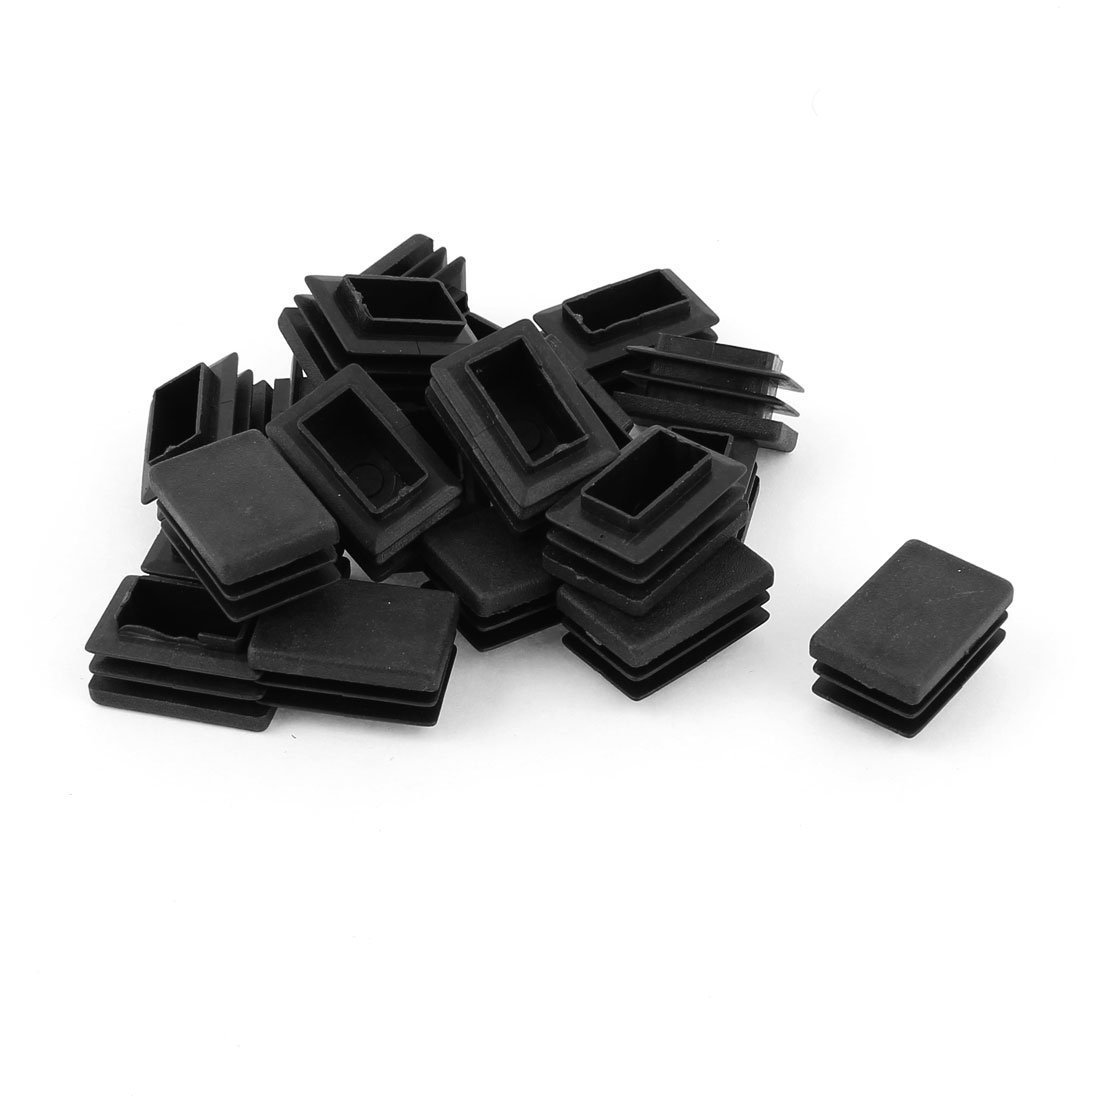 20 pcs Plastic Rectangular End Cap 30mm x 20mm Threaded Pipe Tube Insert Rubber feet20 pcs Plastic Rectangular End Cap 30mm x 20mm Threaded Pipe Tube Insert Rubber feet